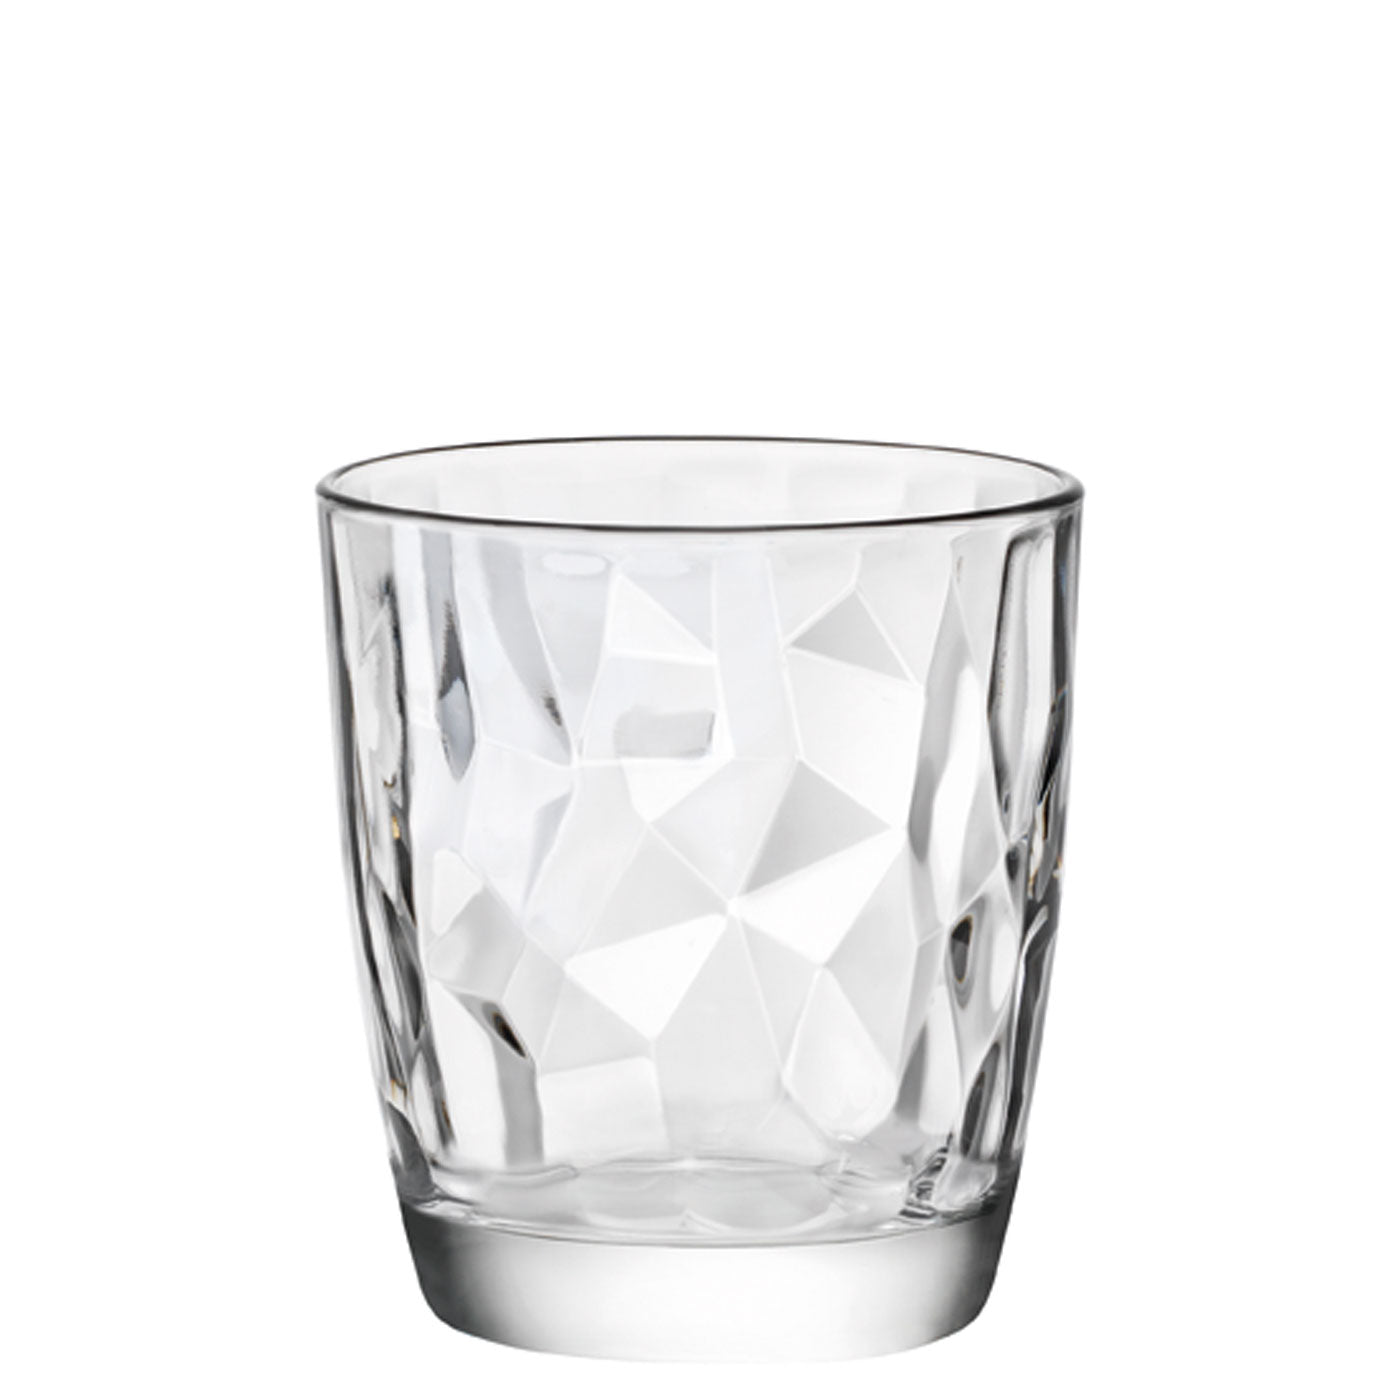 Diamond Trinkglas Transparent 39 cl - Ø 9,1 x 10,3 cm (6 Stück)